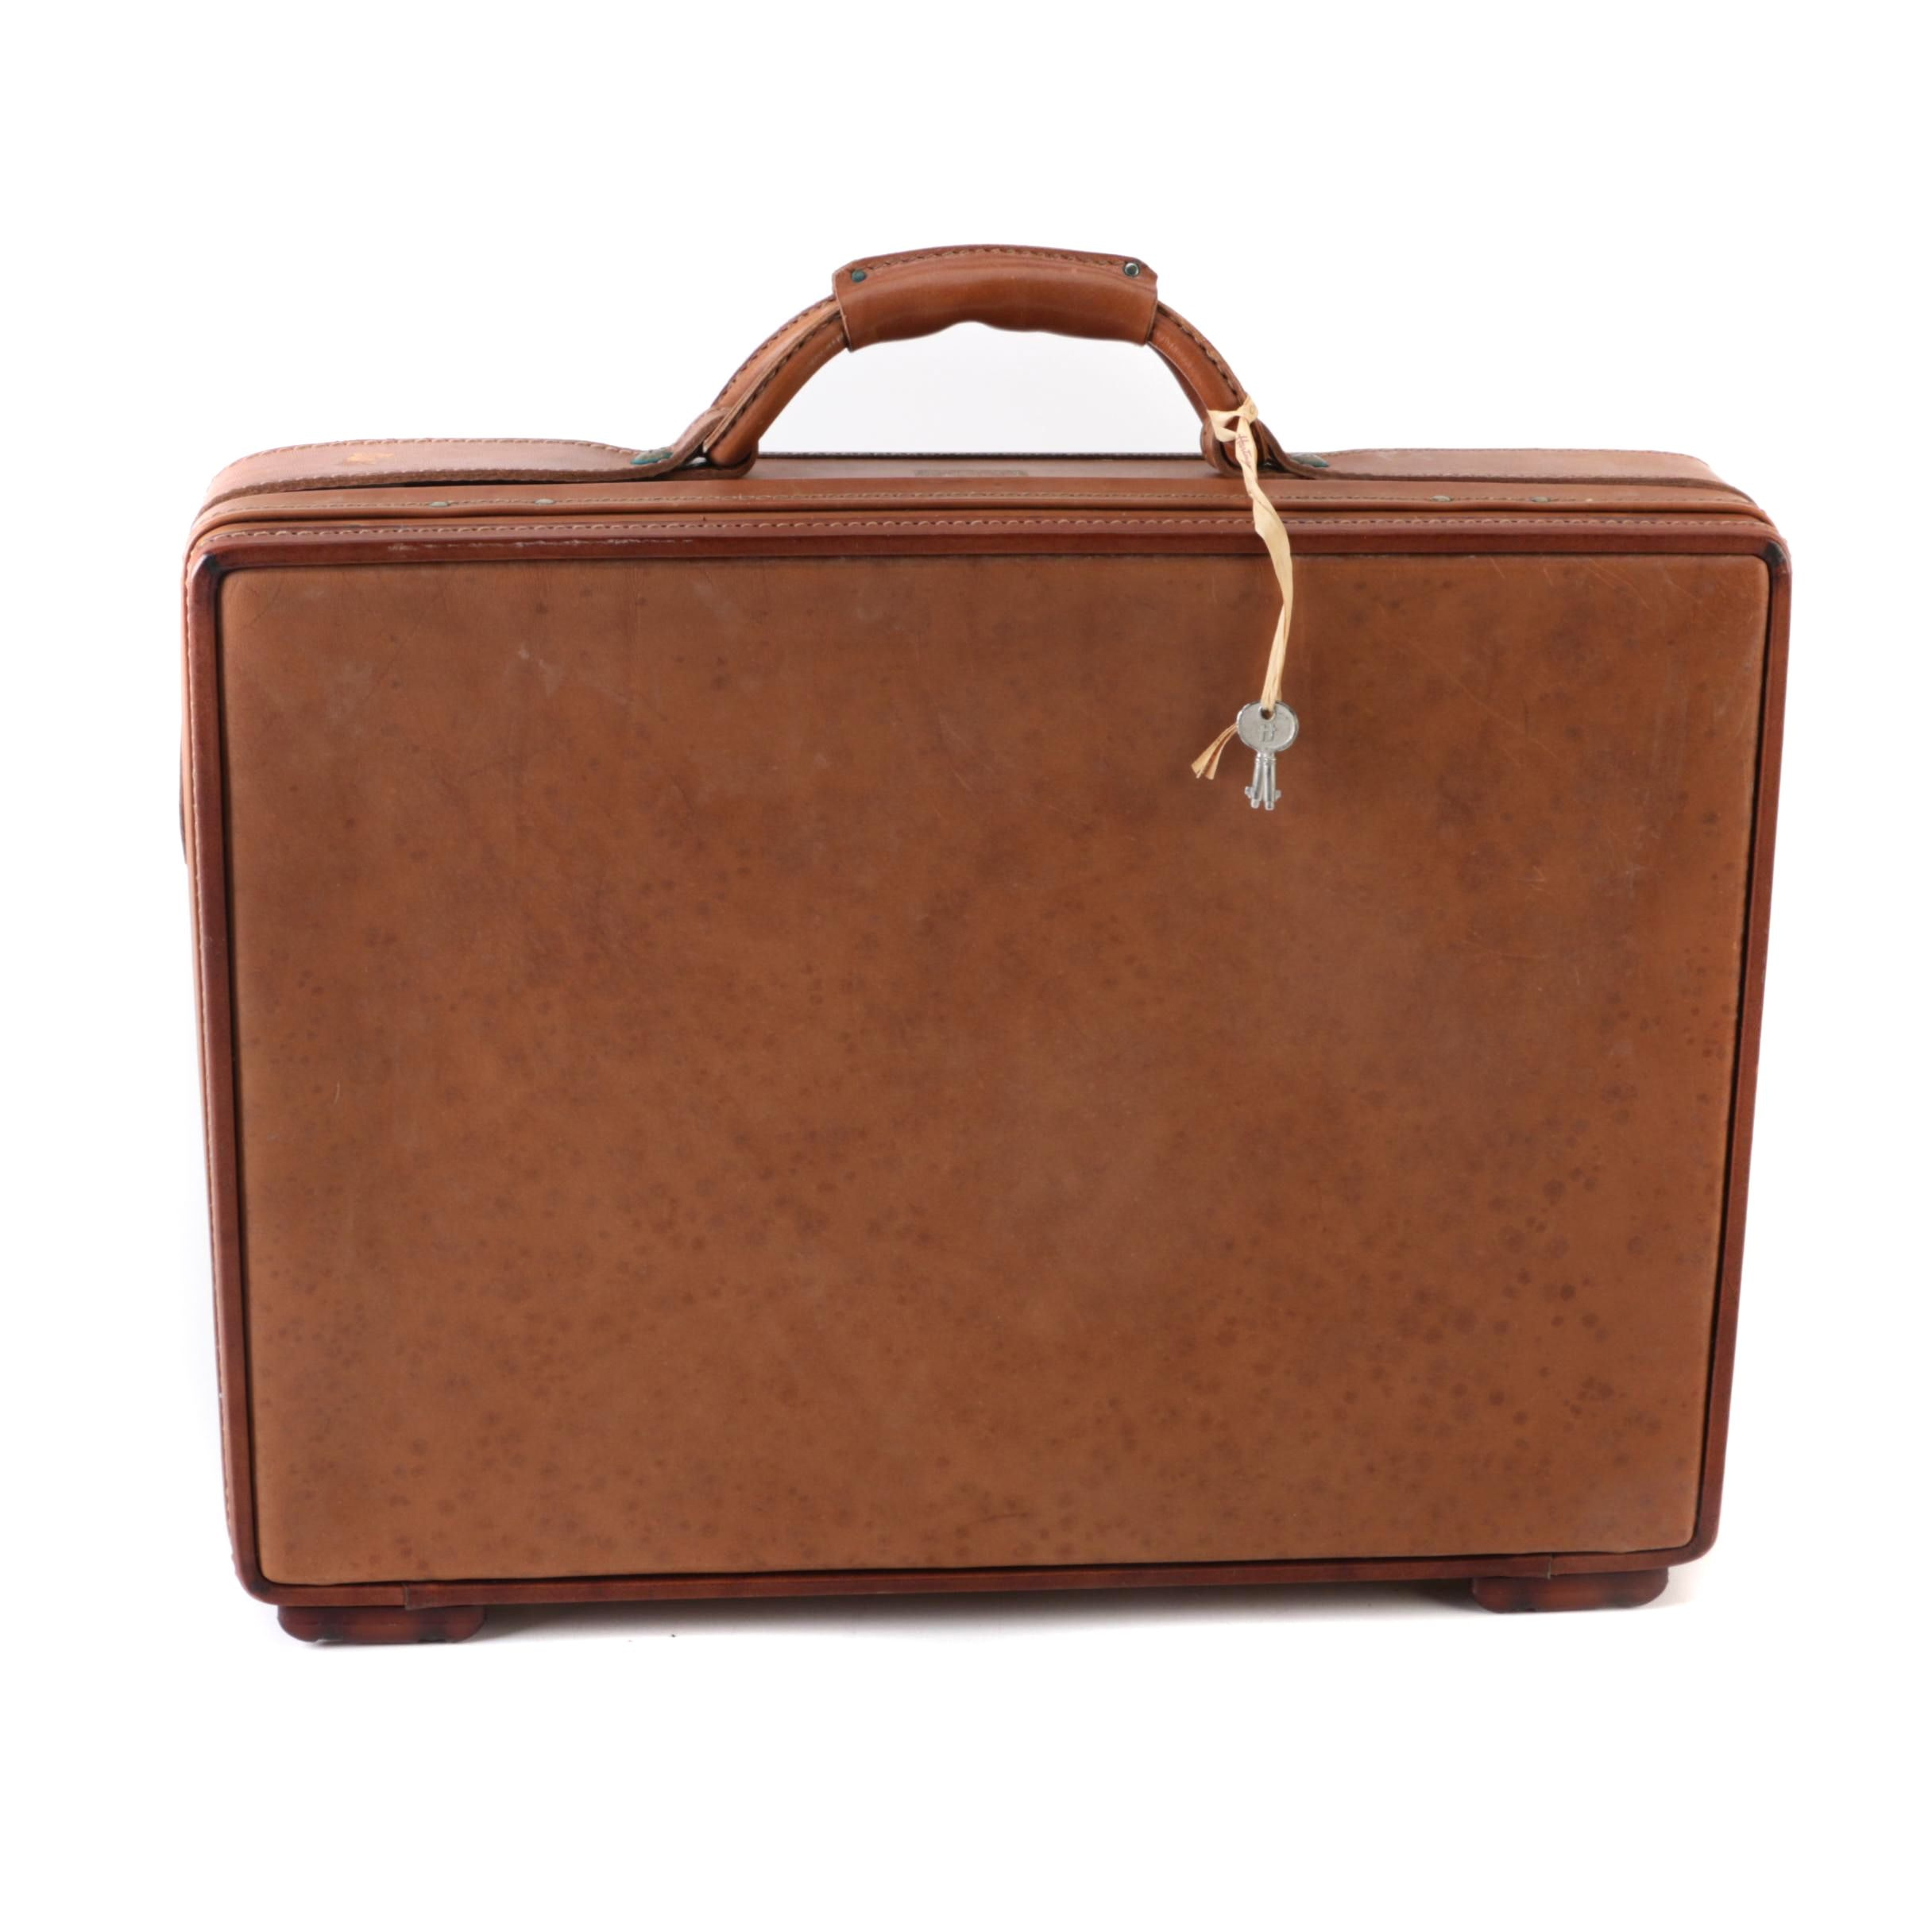 Hartman Leather Suitcase